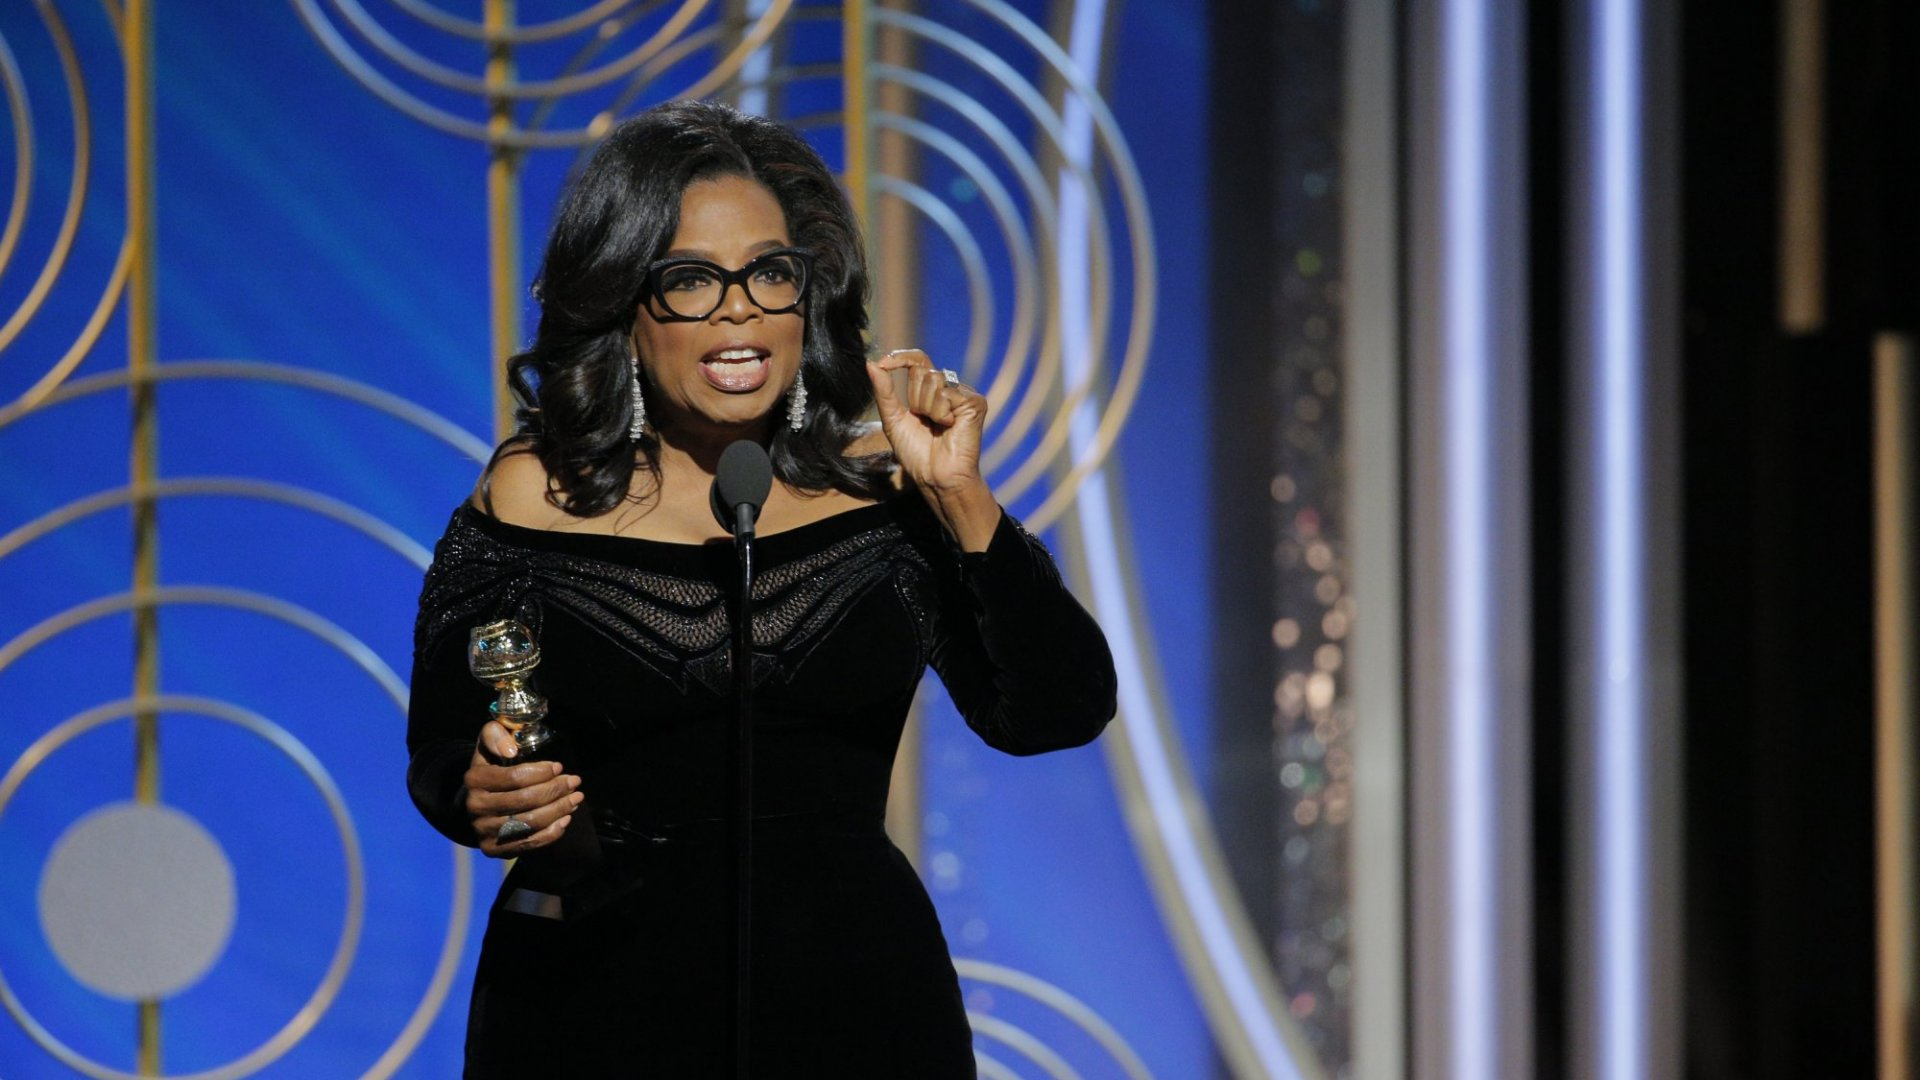 Her powerful use of storytelling made Oprah's message shine.